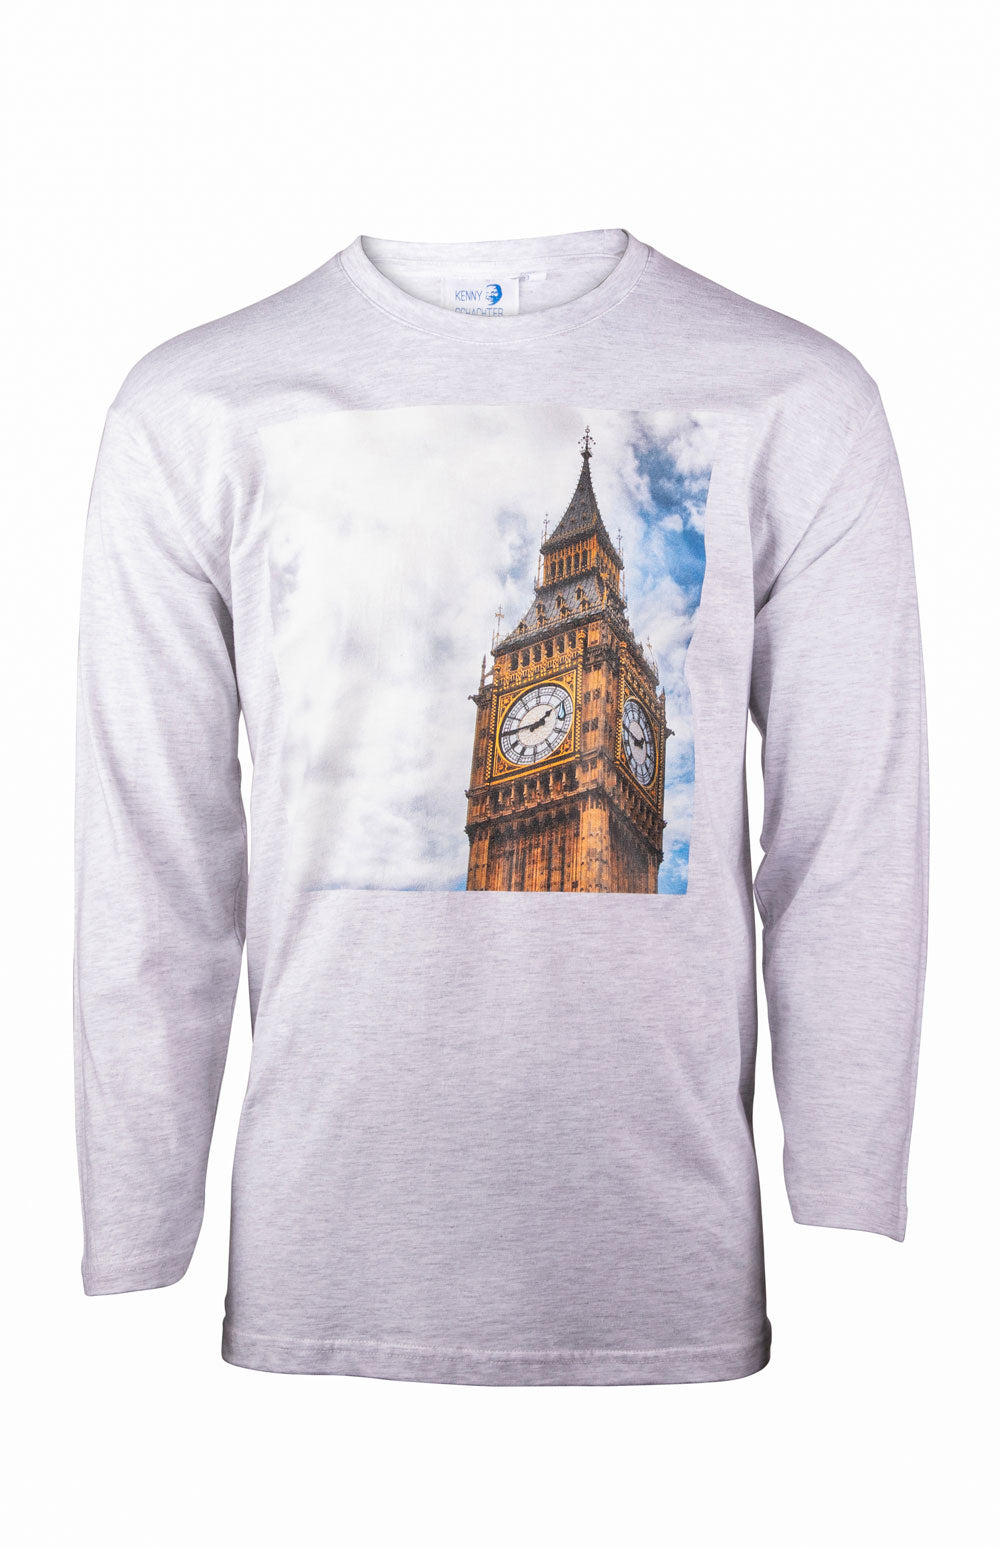 Kenny Schachter 'London' Long Sleeve Top